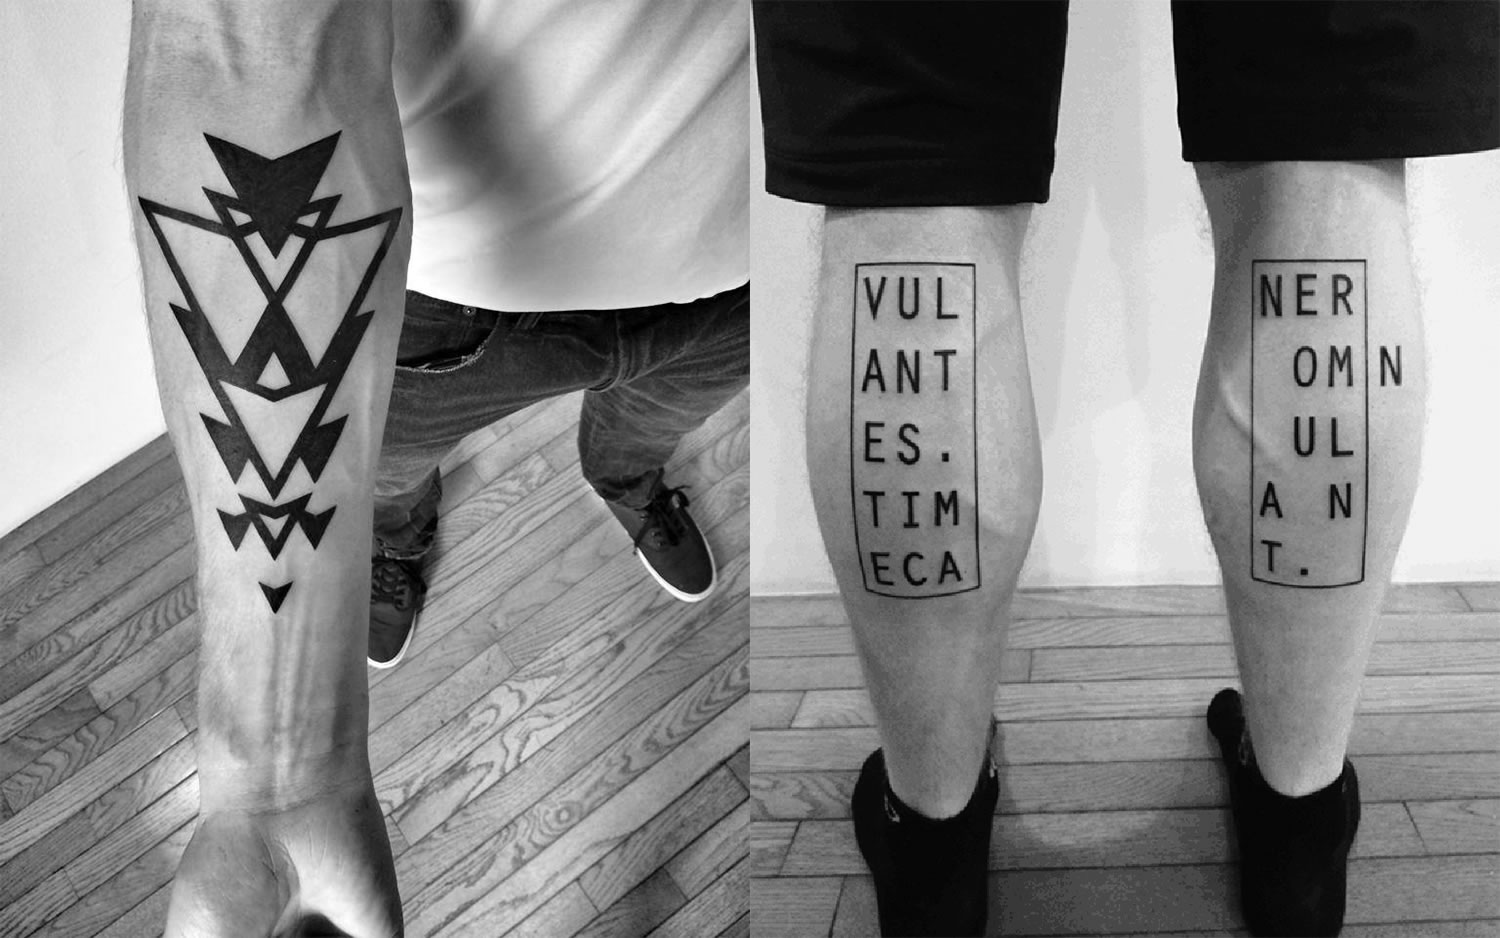 triangles on arm and letters and rectangle outline on leg, tattoos by ben volt, blackwork